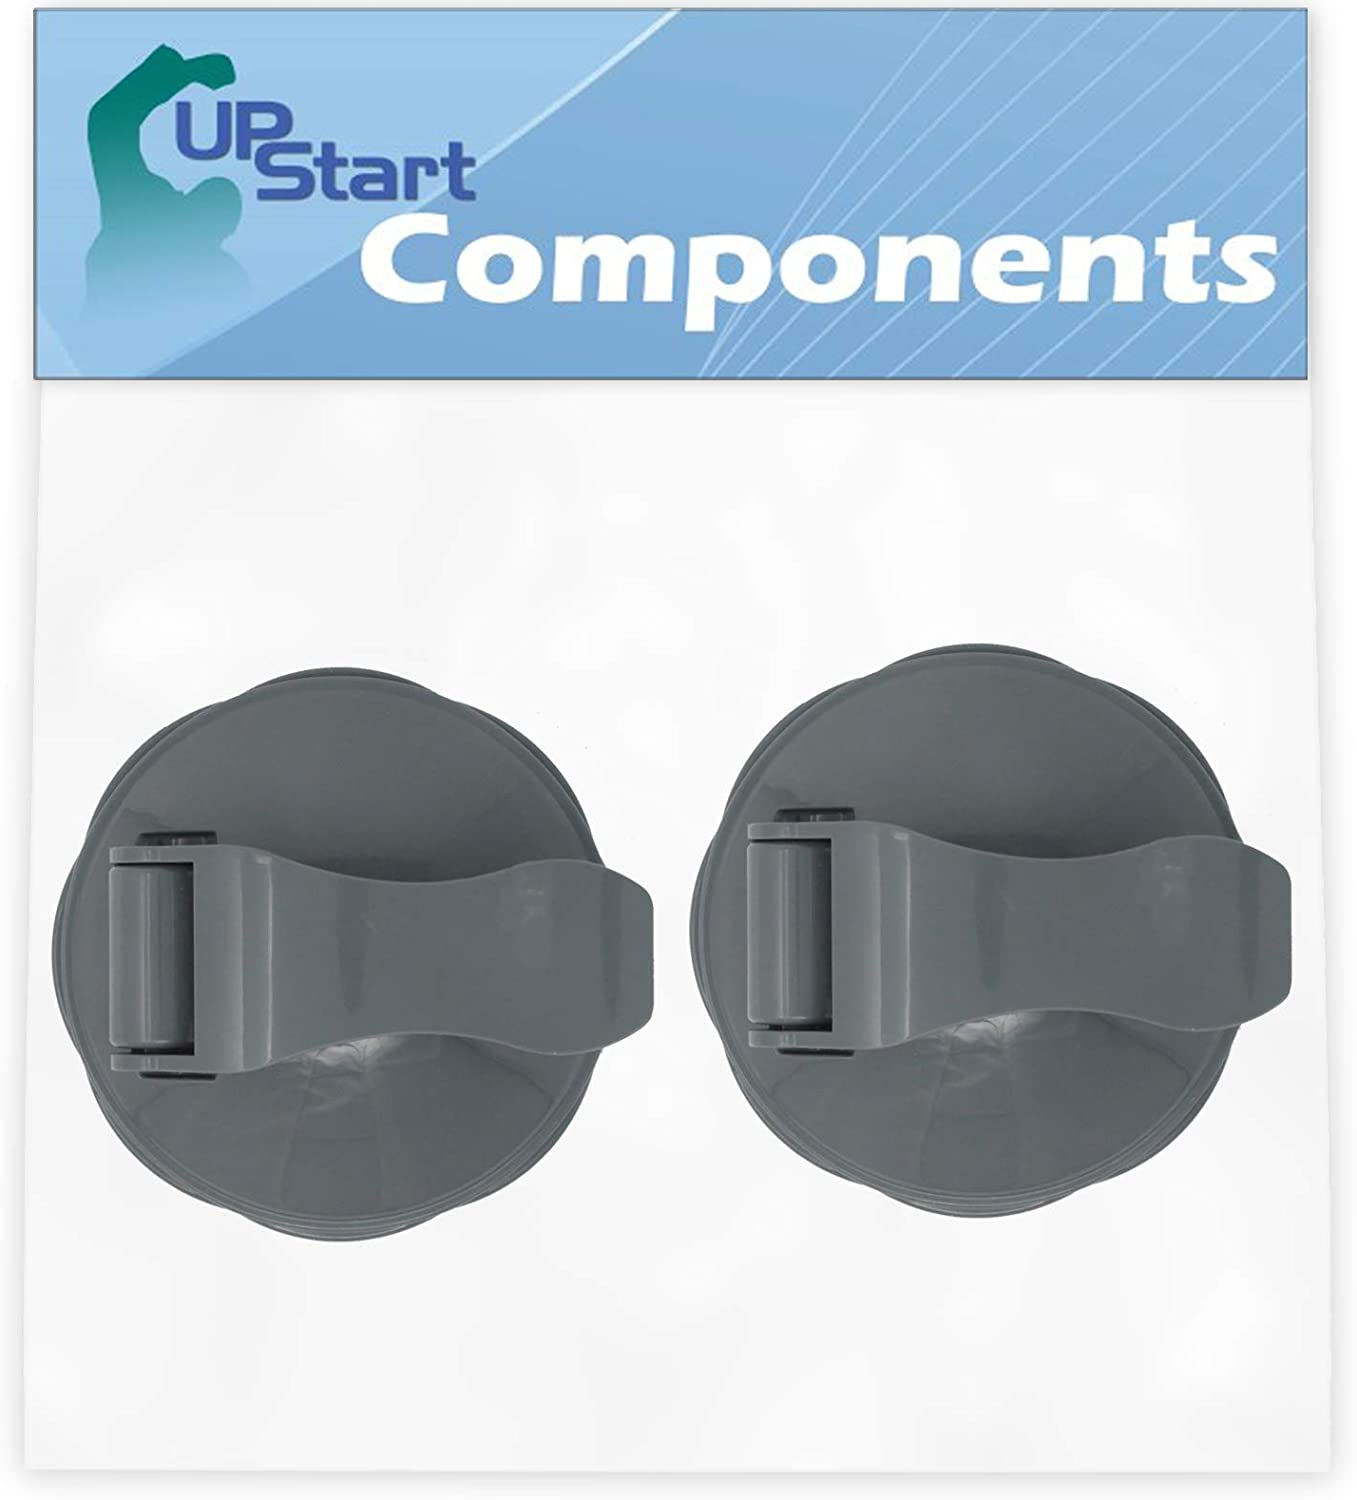 2 Pack UpStart Components Replacement for NutriBullet Flip Top To-Go Lid Compatible with NutriBullet 600W Blender Cups